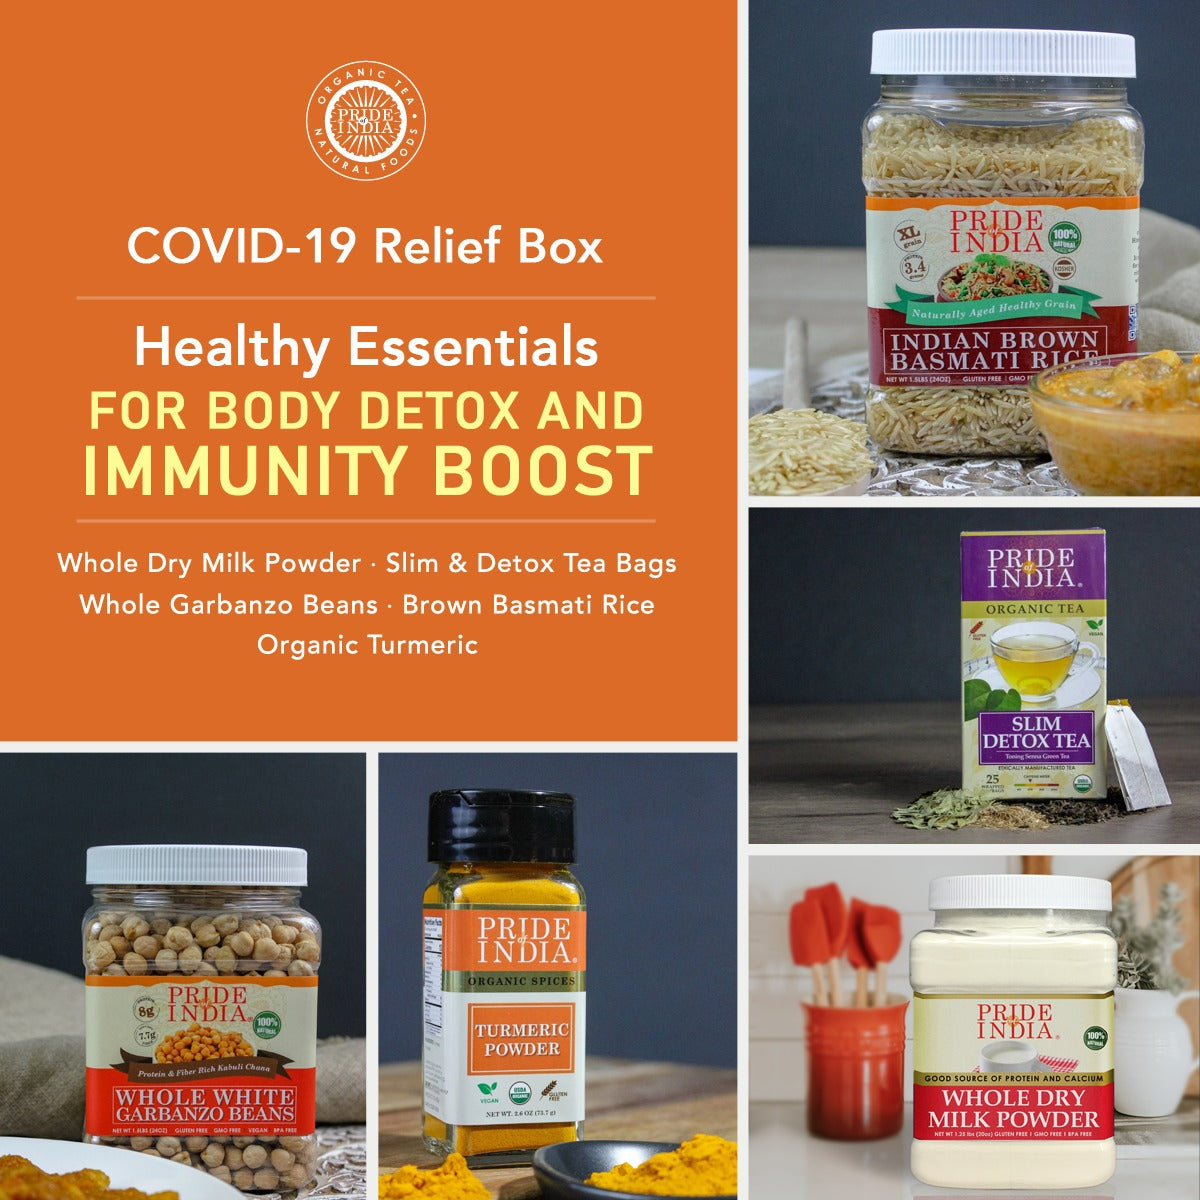 SPECIAL COVID-19 RELIEF BOX - MAY'S BOX OF THE MONTH